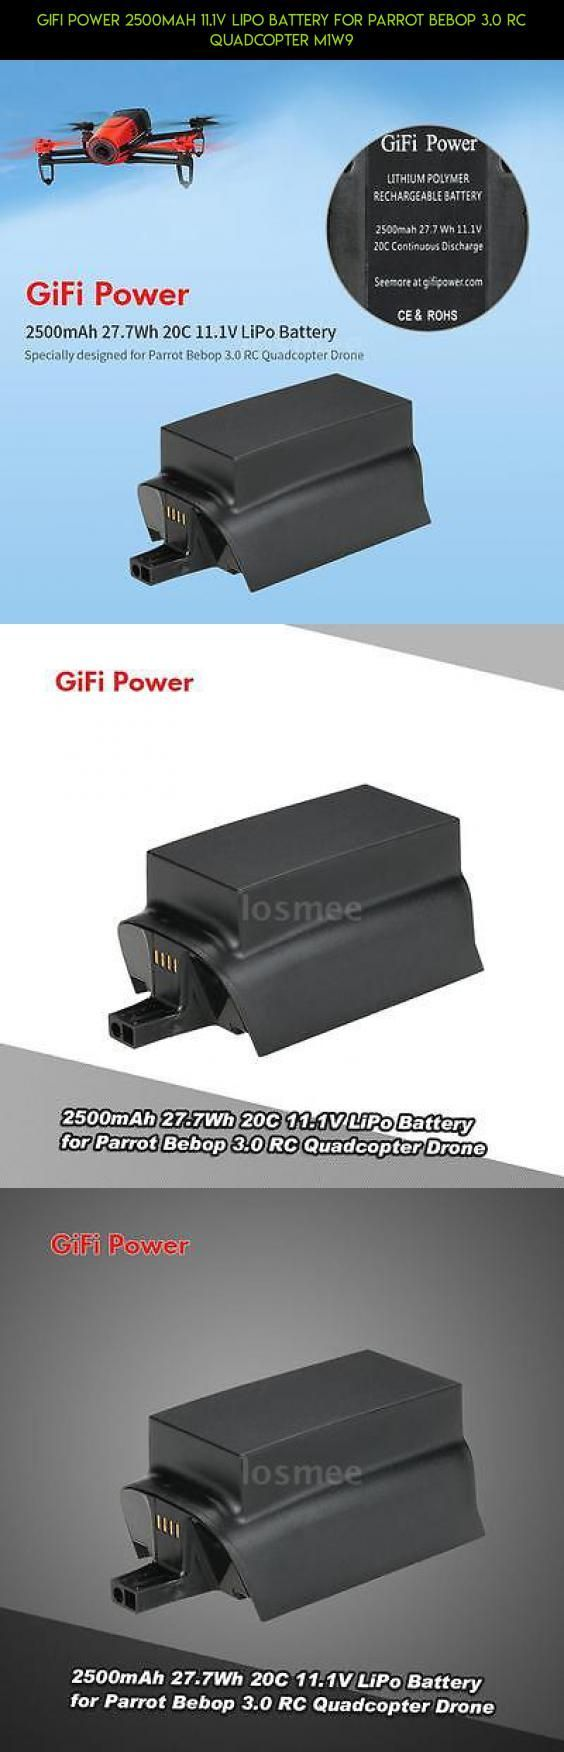 GiFi Power 2500mAh 11.1V LiPo Battery for Parrot Bebop 3.0 RC Quadcopter M1W9 #racing #3.0 #camera #technology #shopping #parts #fpv #gadgets #drone #products #tech #kit #parrot #plans